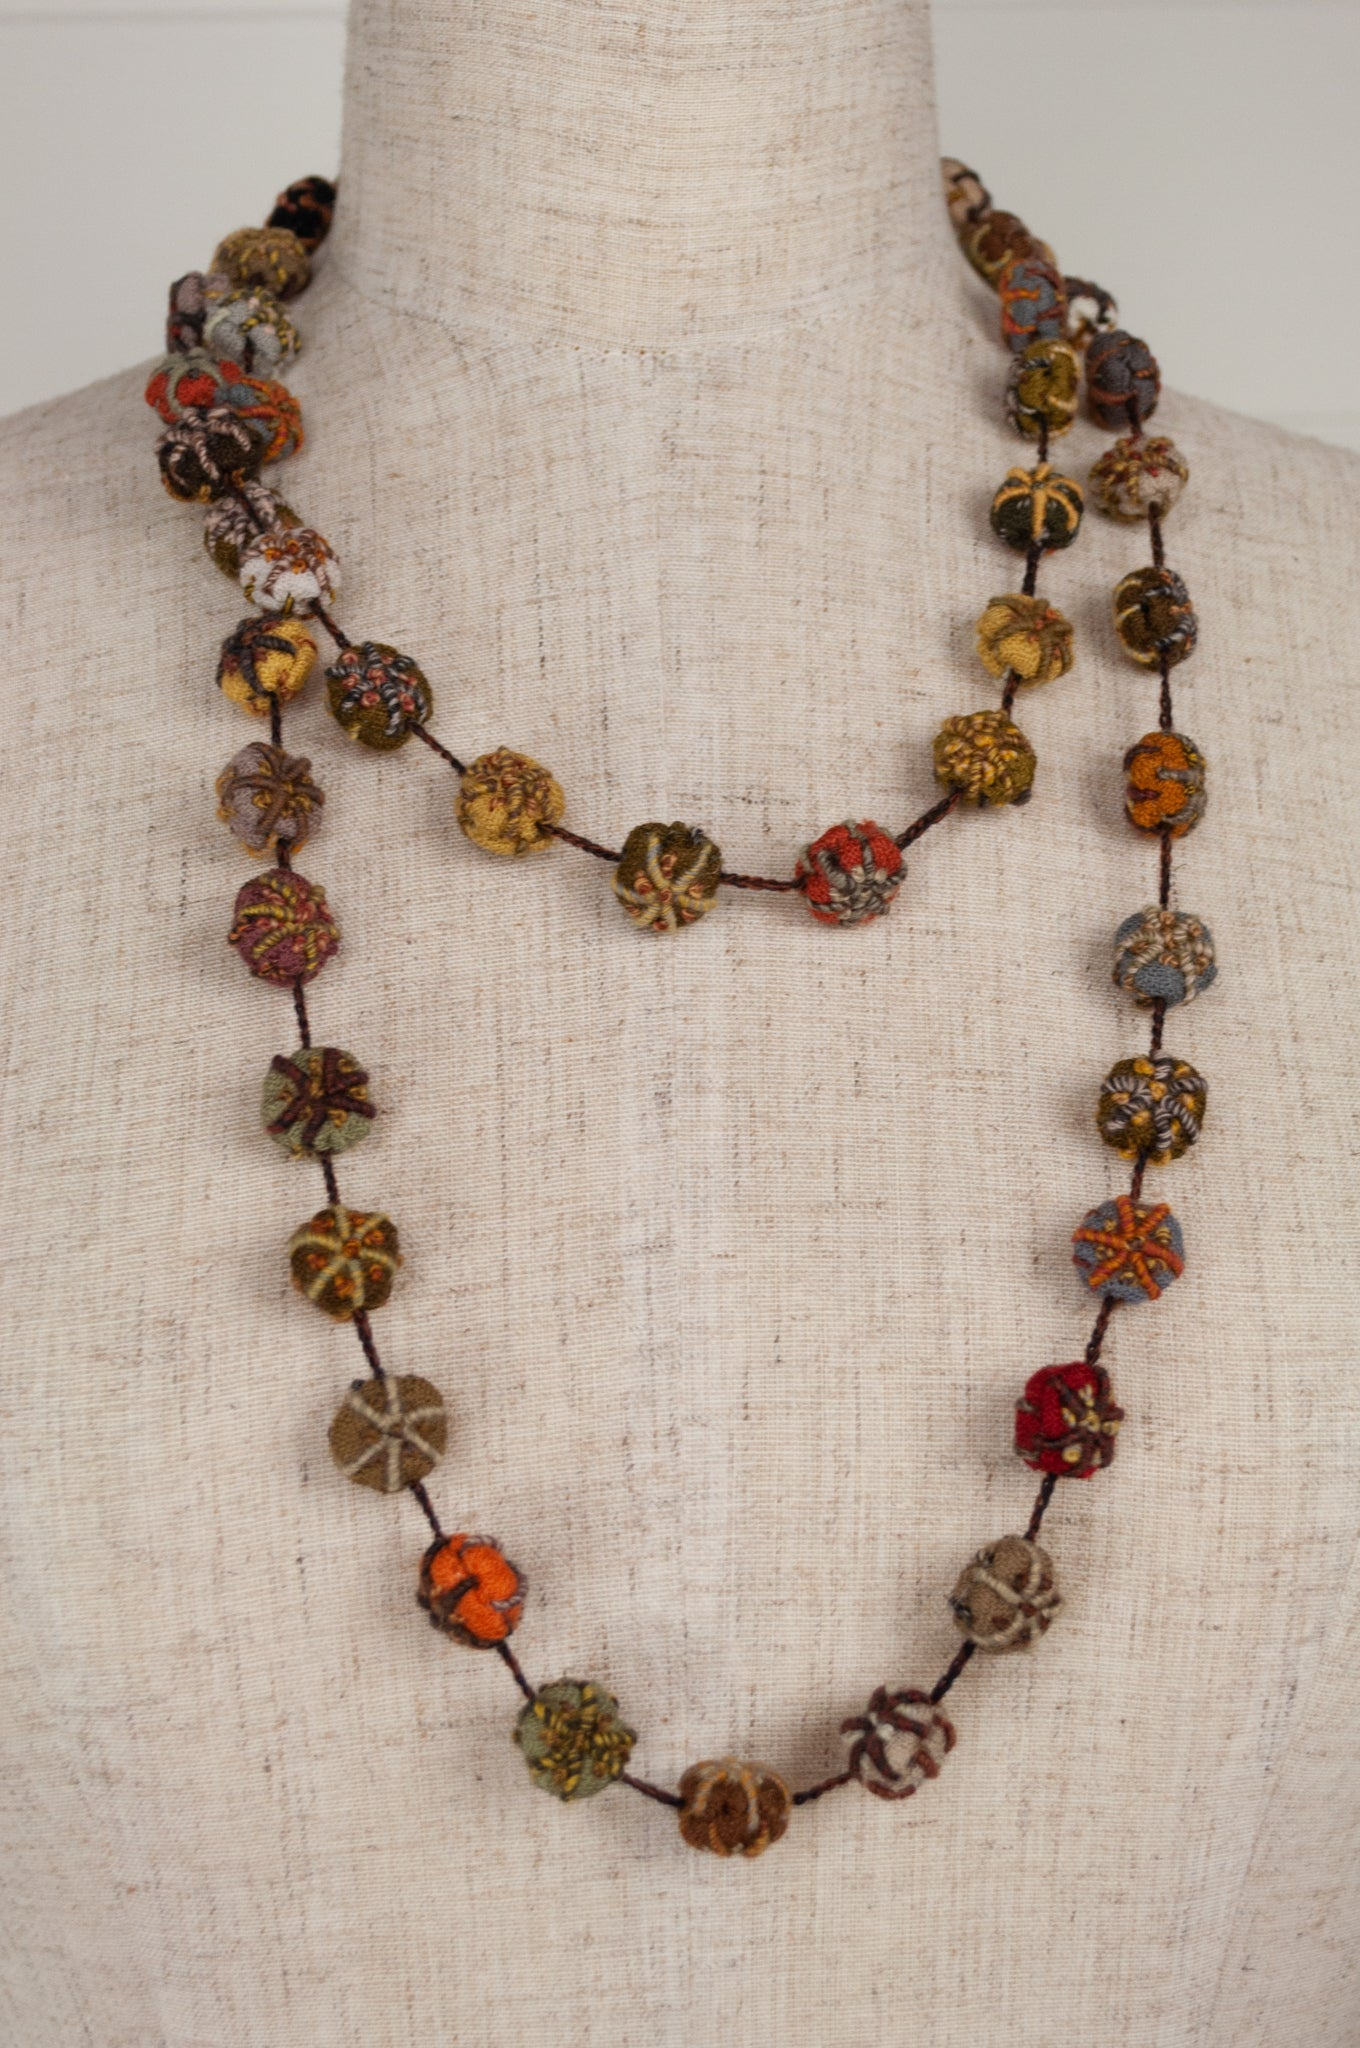 Sophie Digard Prairie long crocheted and embroidered necklace in wool and cotton in the Earth palette.